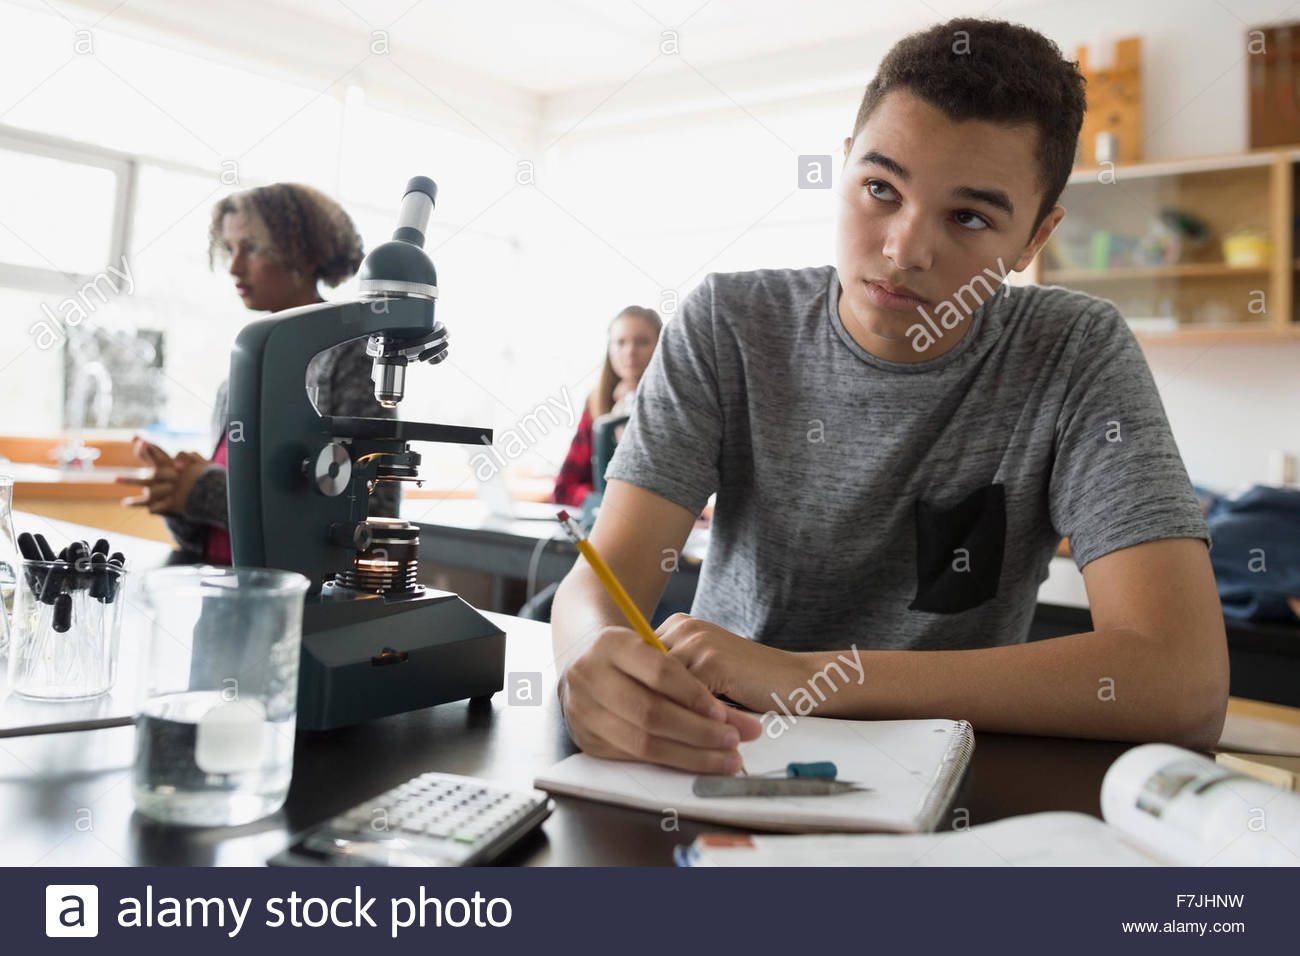 Focused high school student taking notes science class - Stock Image